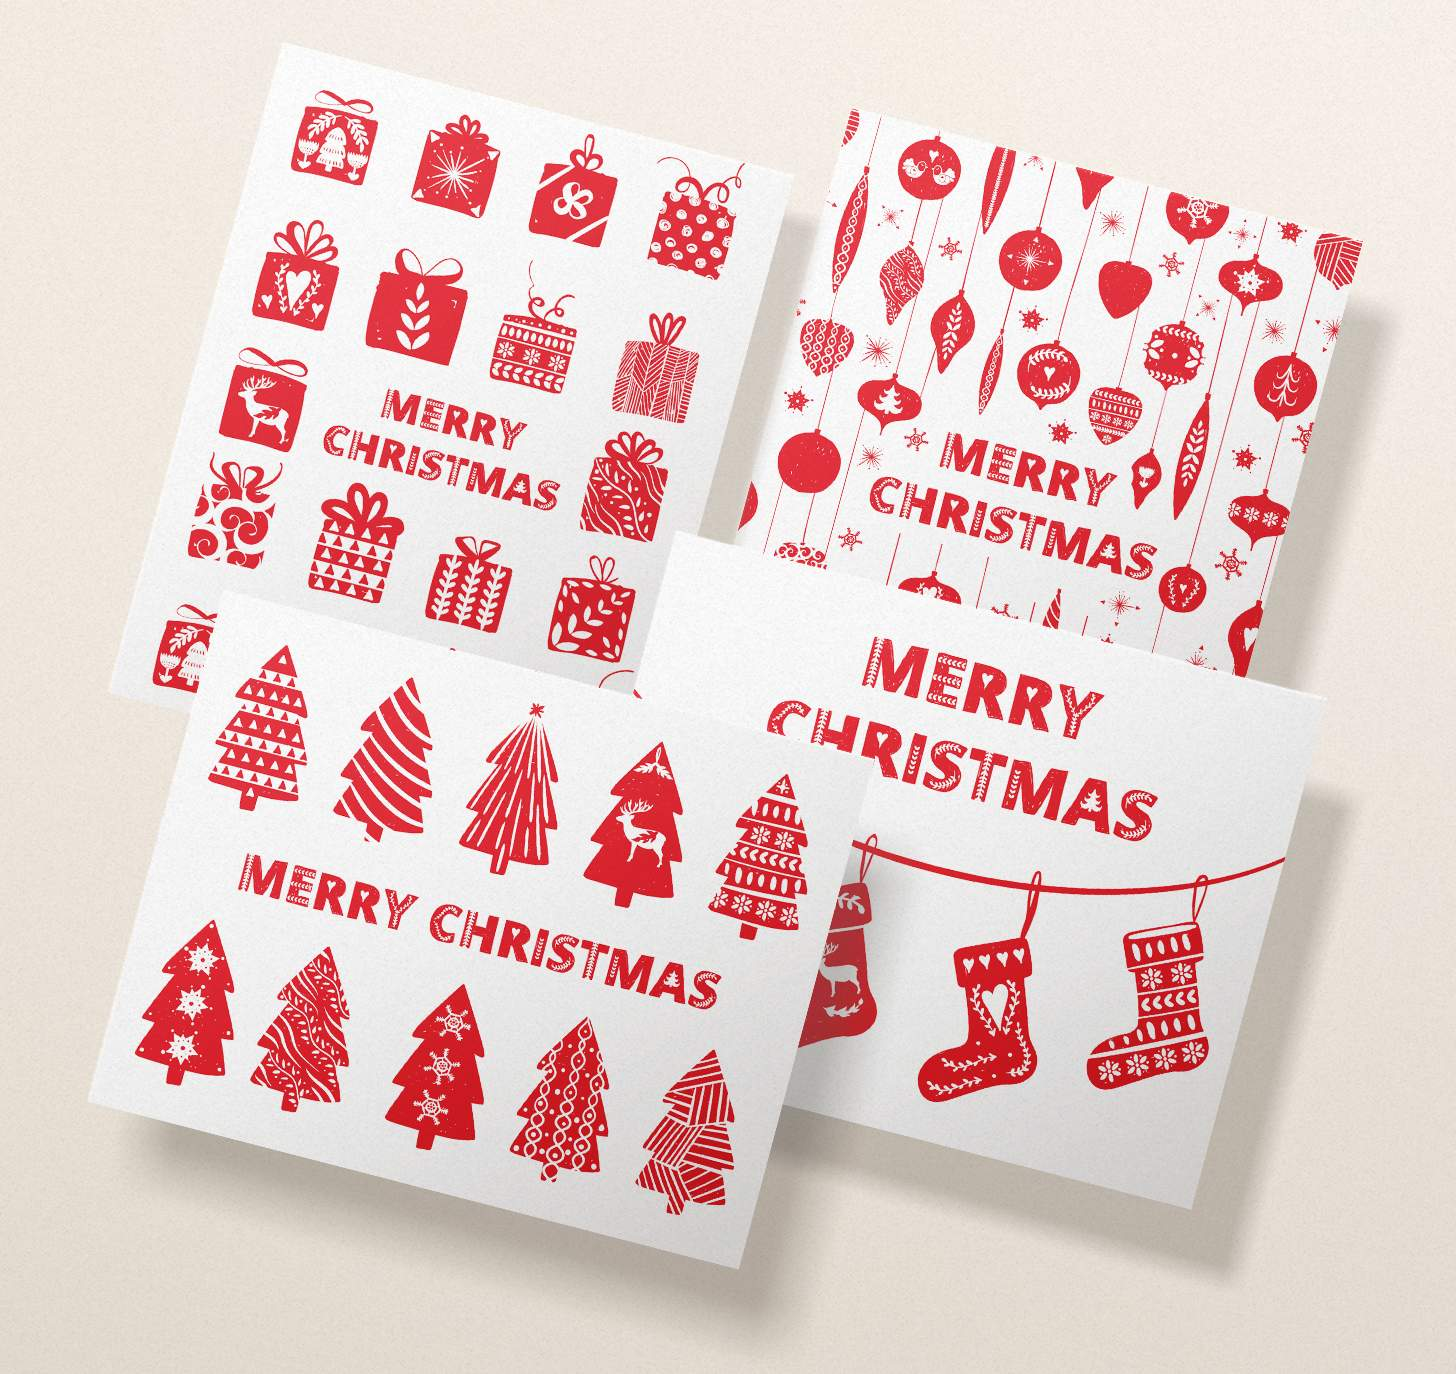 Four overlapping assorted Merry Christmas cards with trees, presents, stockings, and ornaments designs